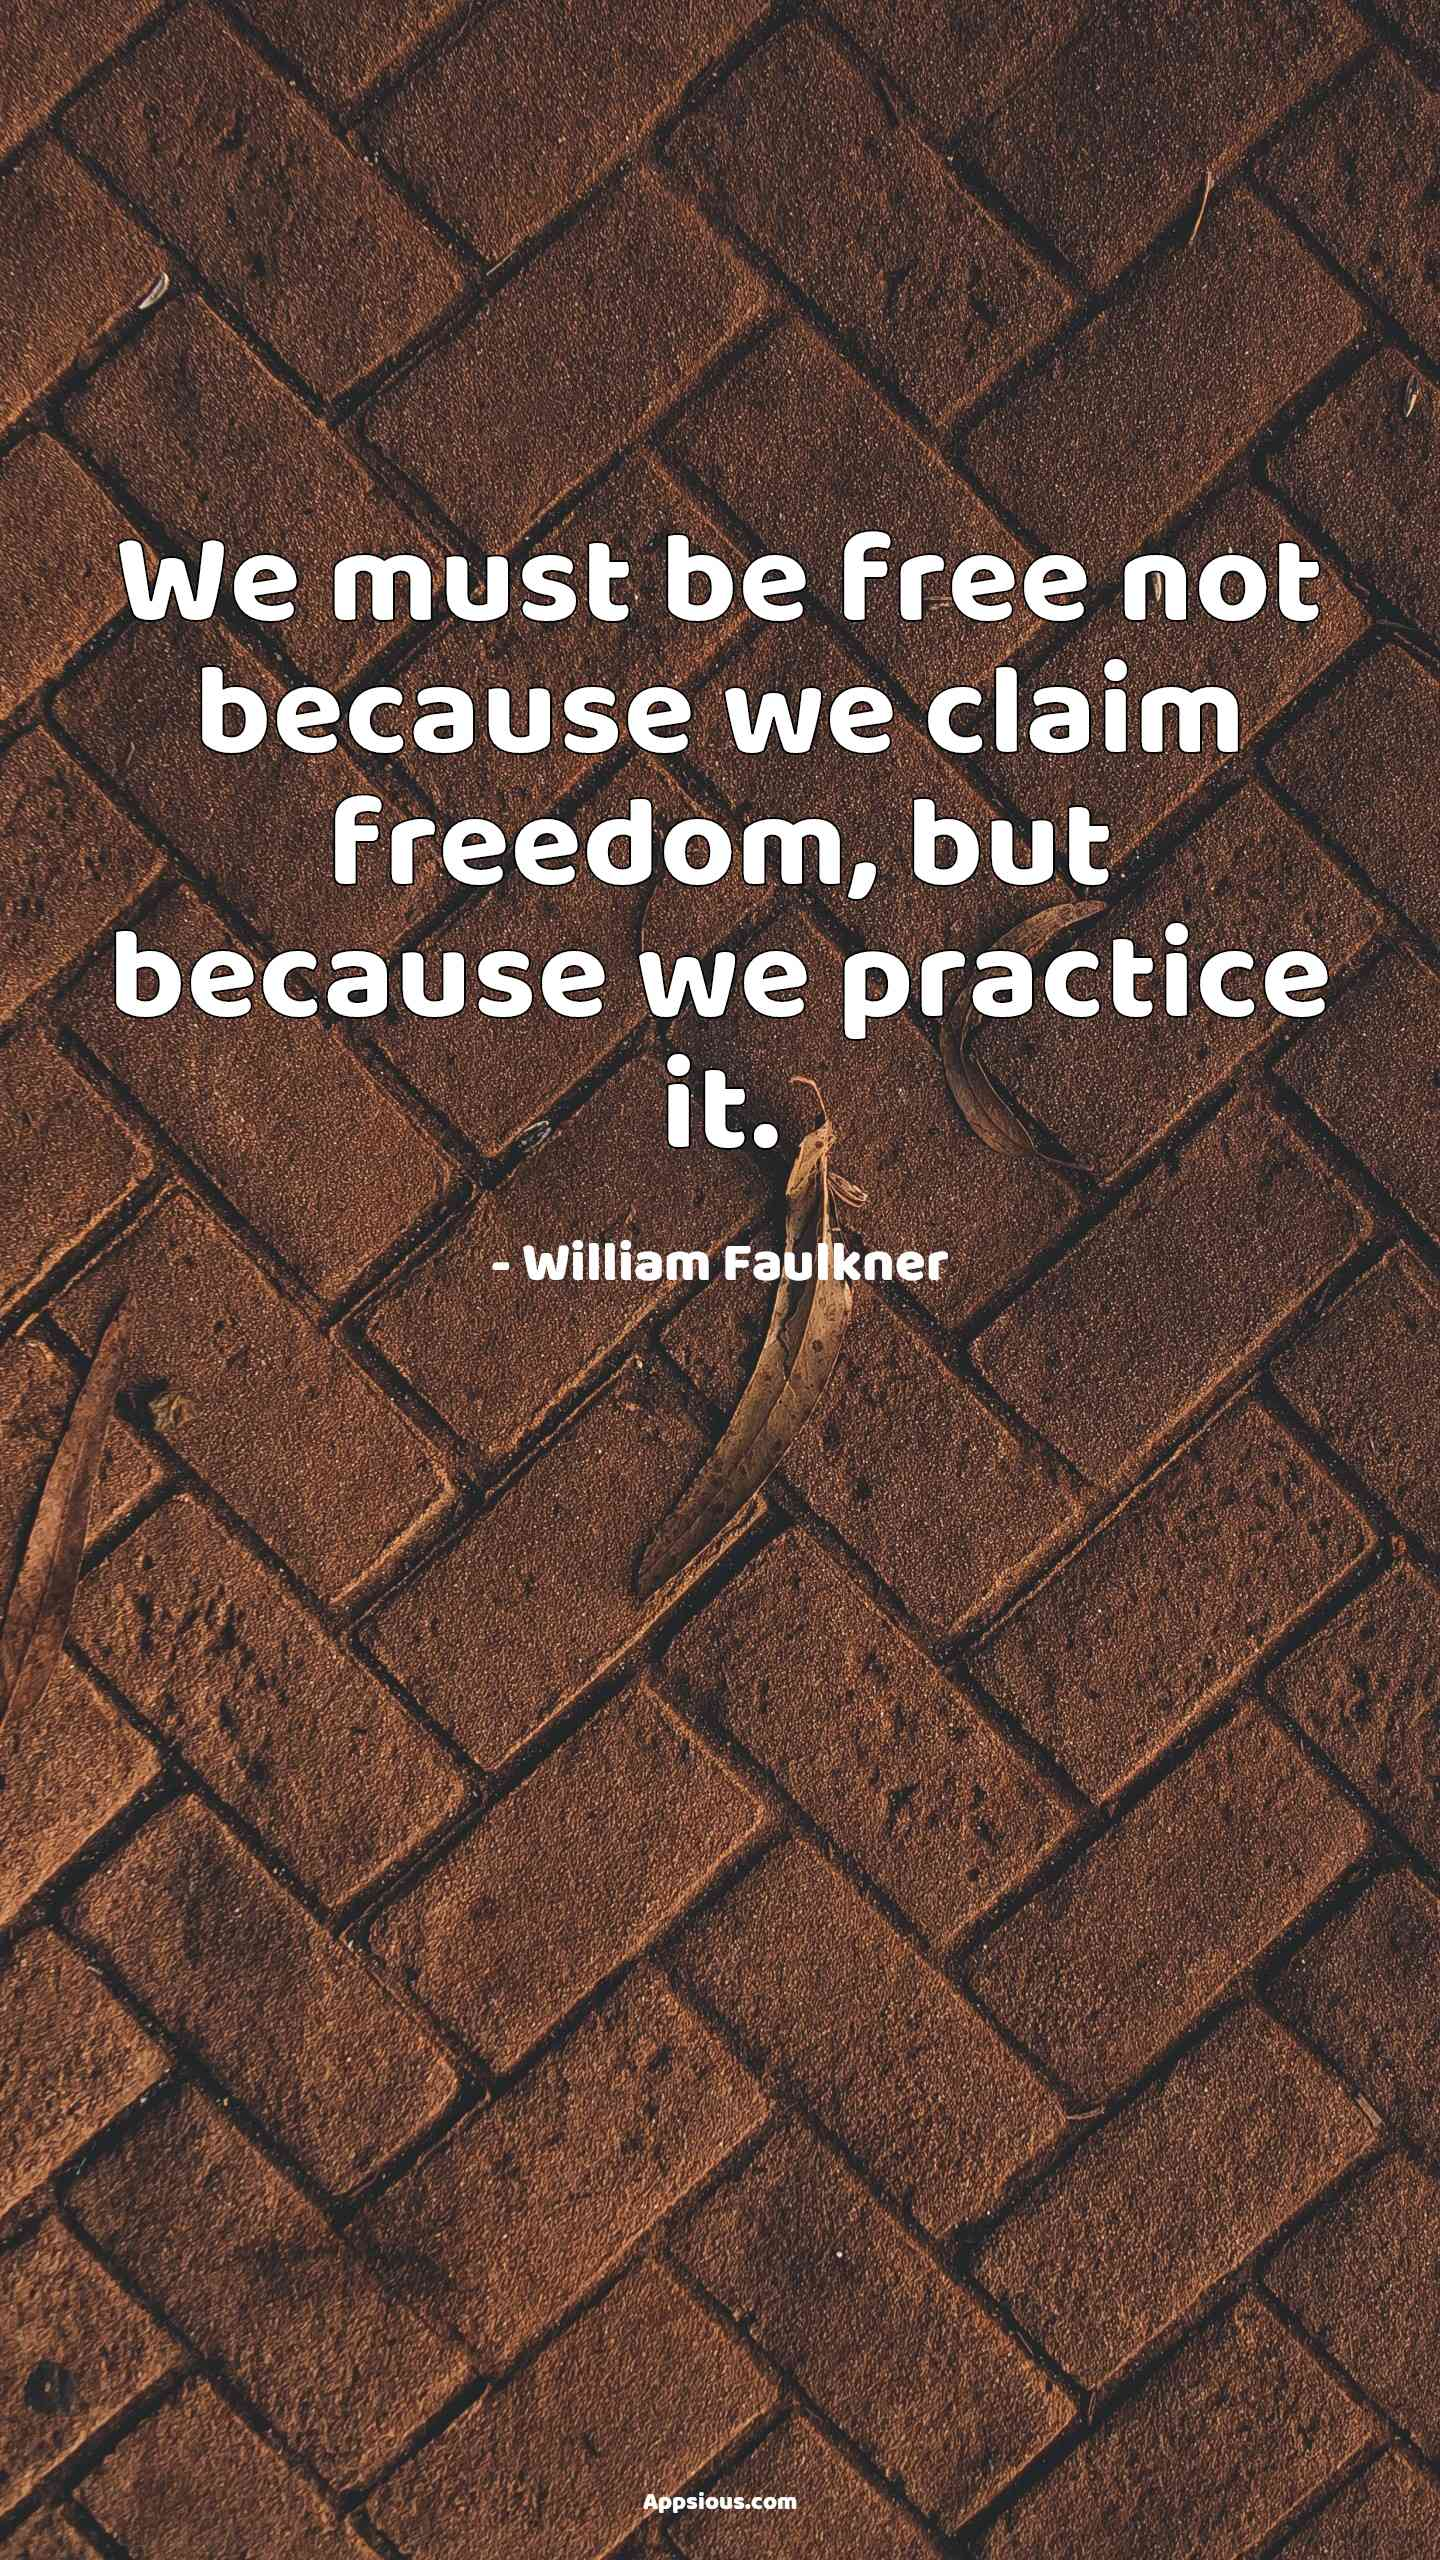 We must be free not because we claim freedom, but because we practice it.